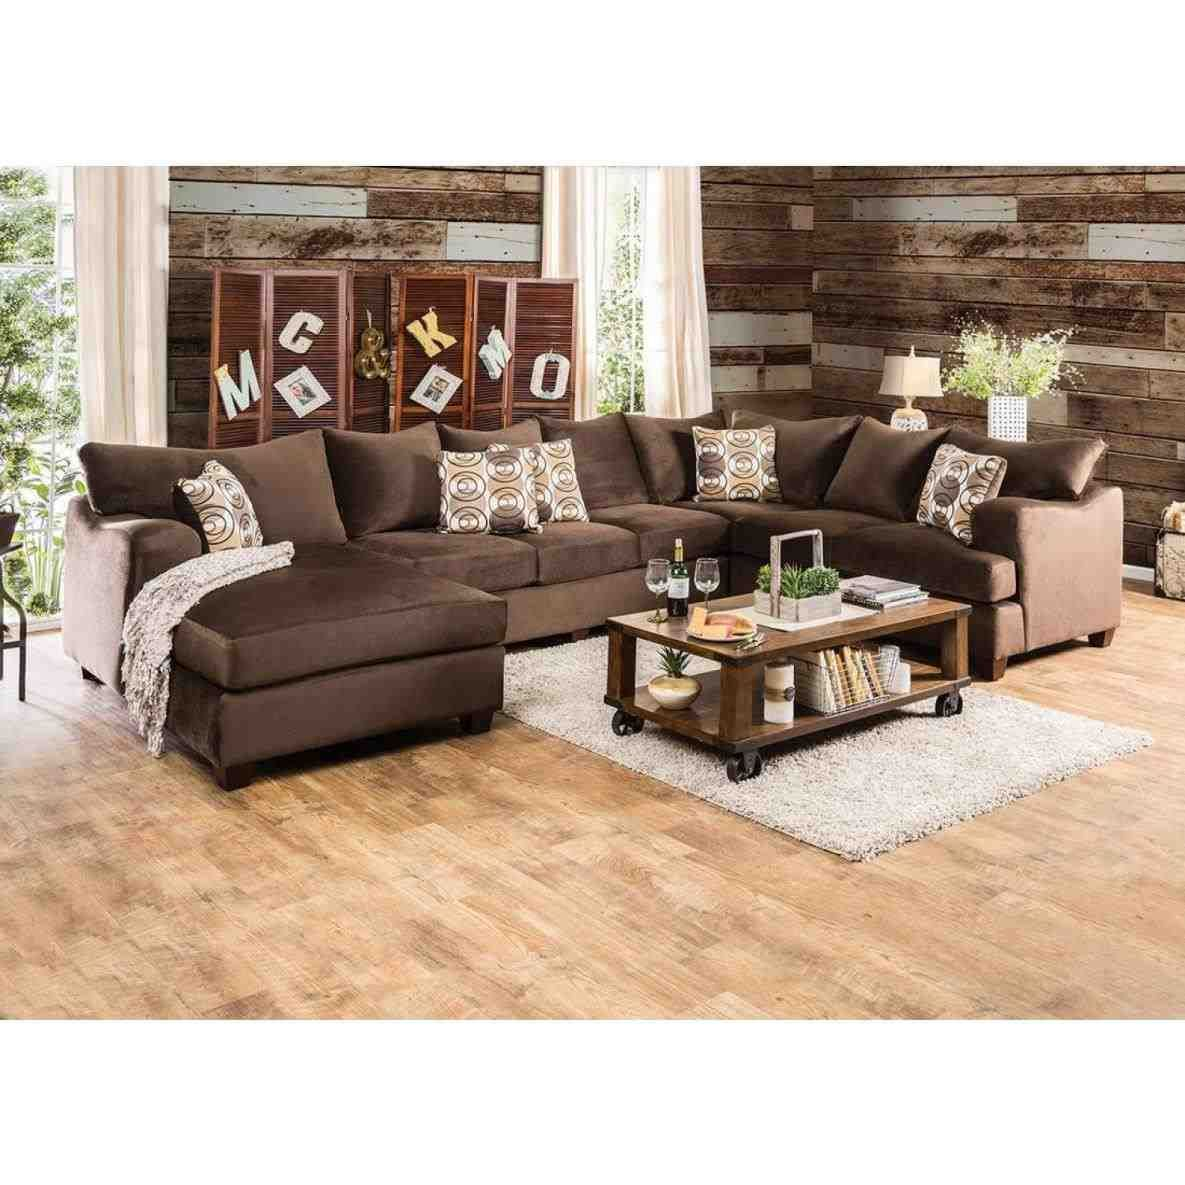 cheap living room furniture in montgomery al full size of chairs rh pinterest com